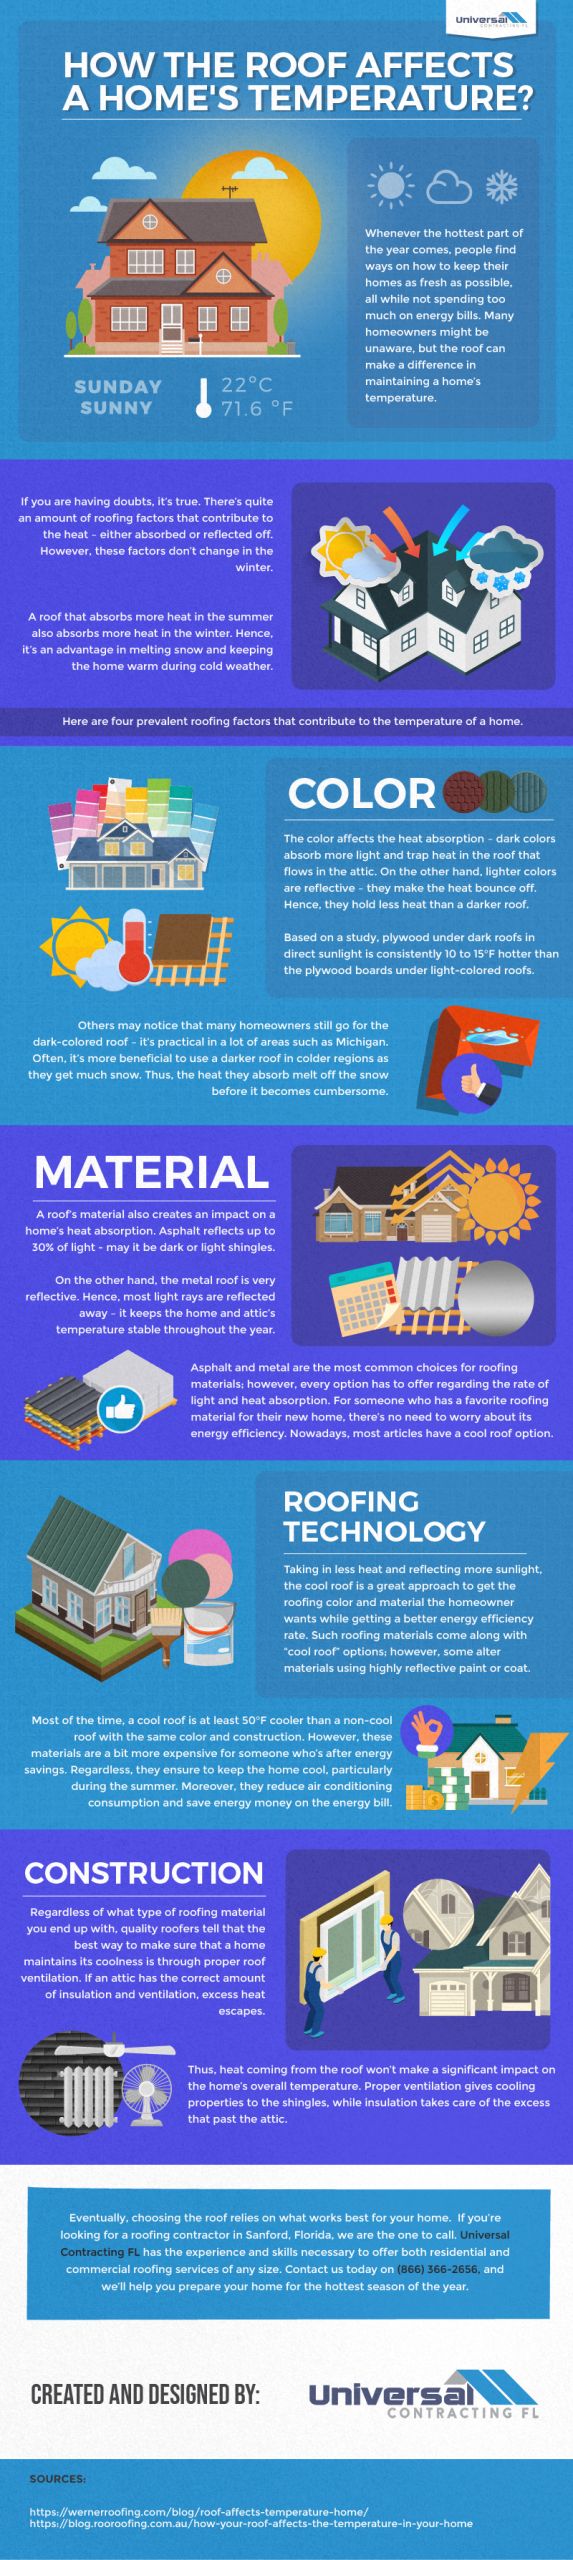 How the Roof Affects a Home's Temperature - Infographic